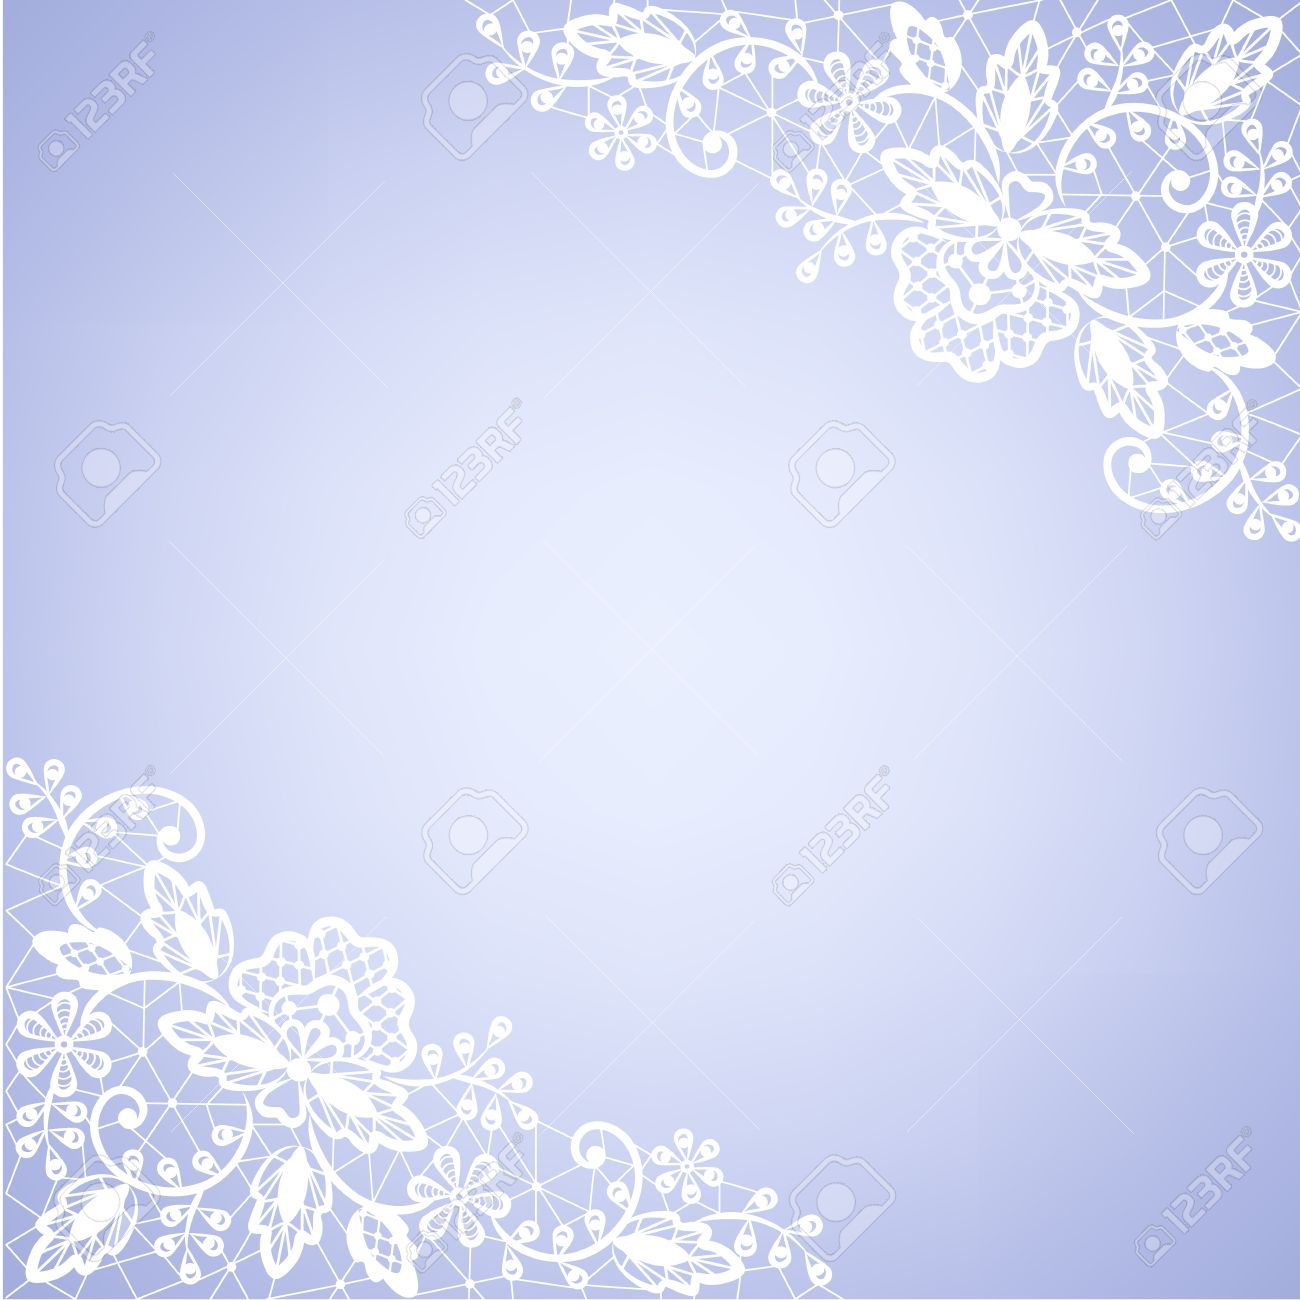 Template For Wedding Invitation Or Greeting Card With Lace Fabric White Frame On Blue Background